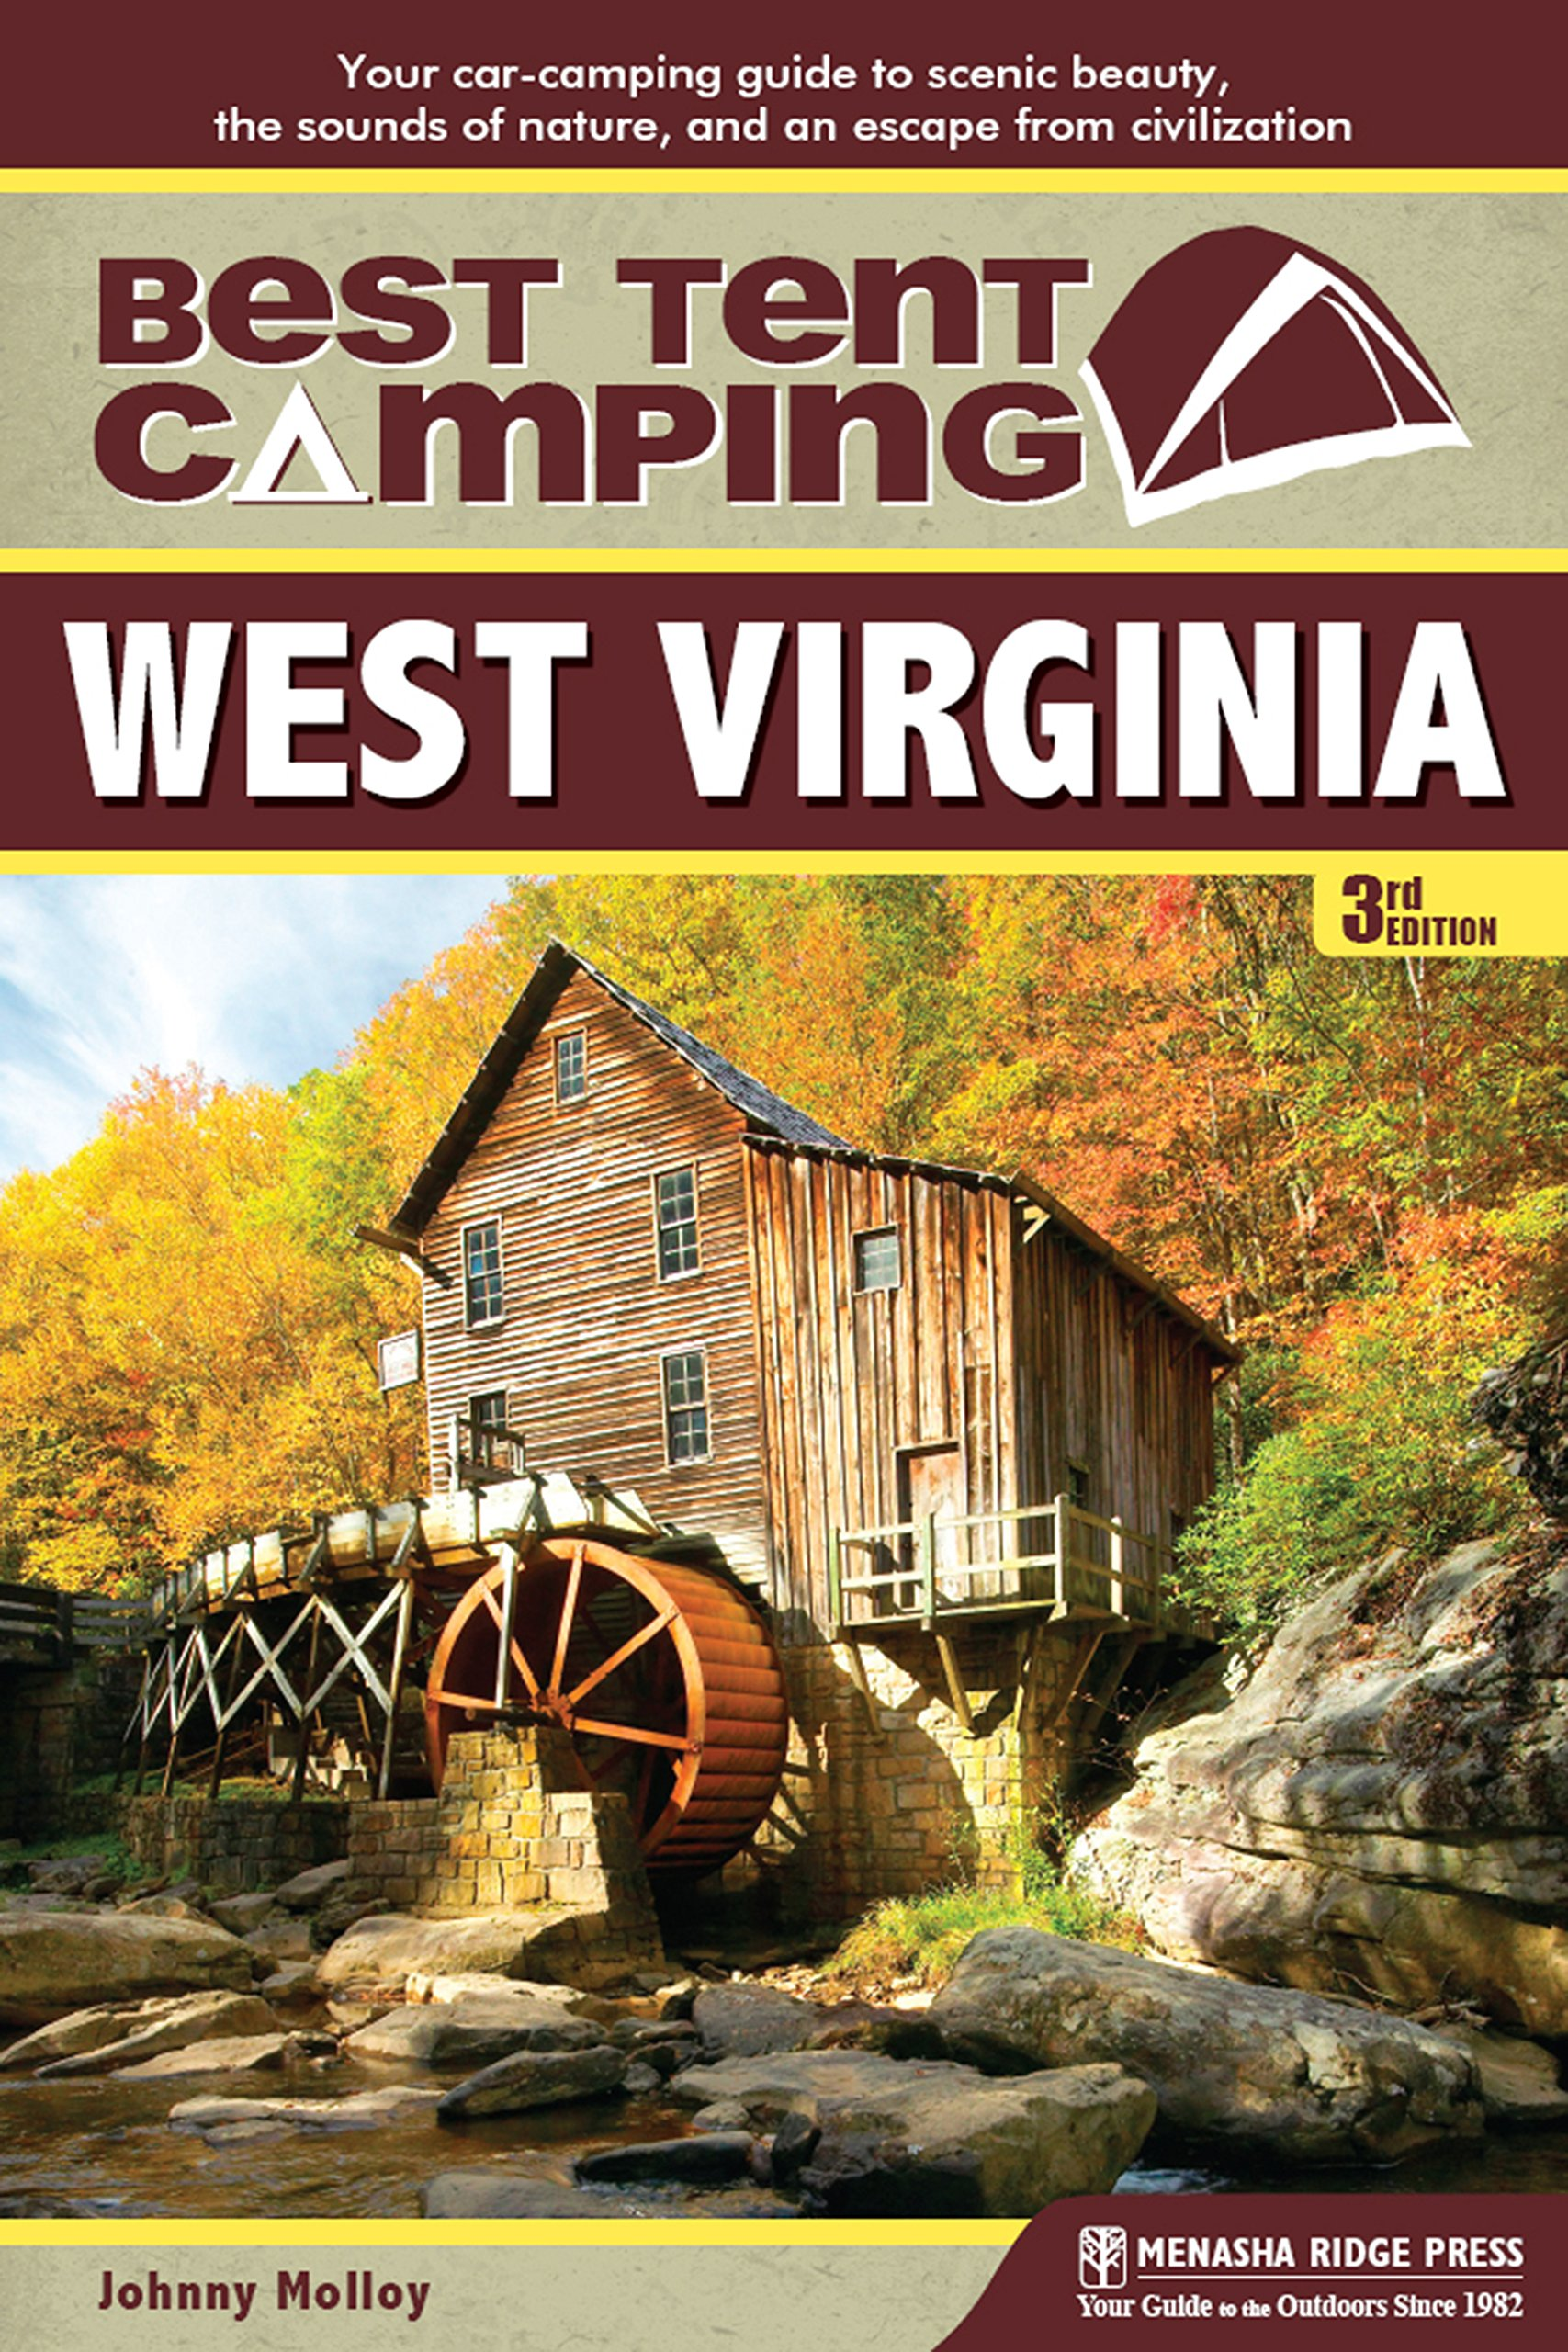 Best Tent Camping: West Virginia: Your Car-Camping Guide to Scenic Beauty, the Sounds of Nature, and an Escape from Civilization ebook